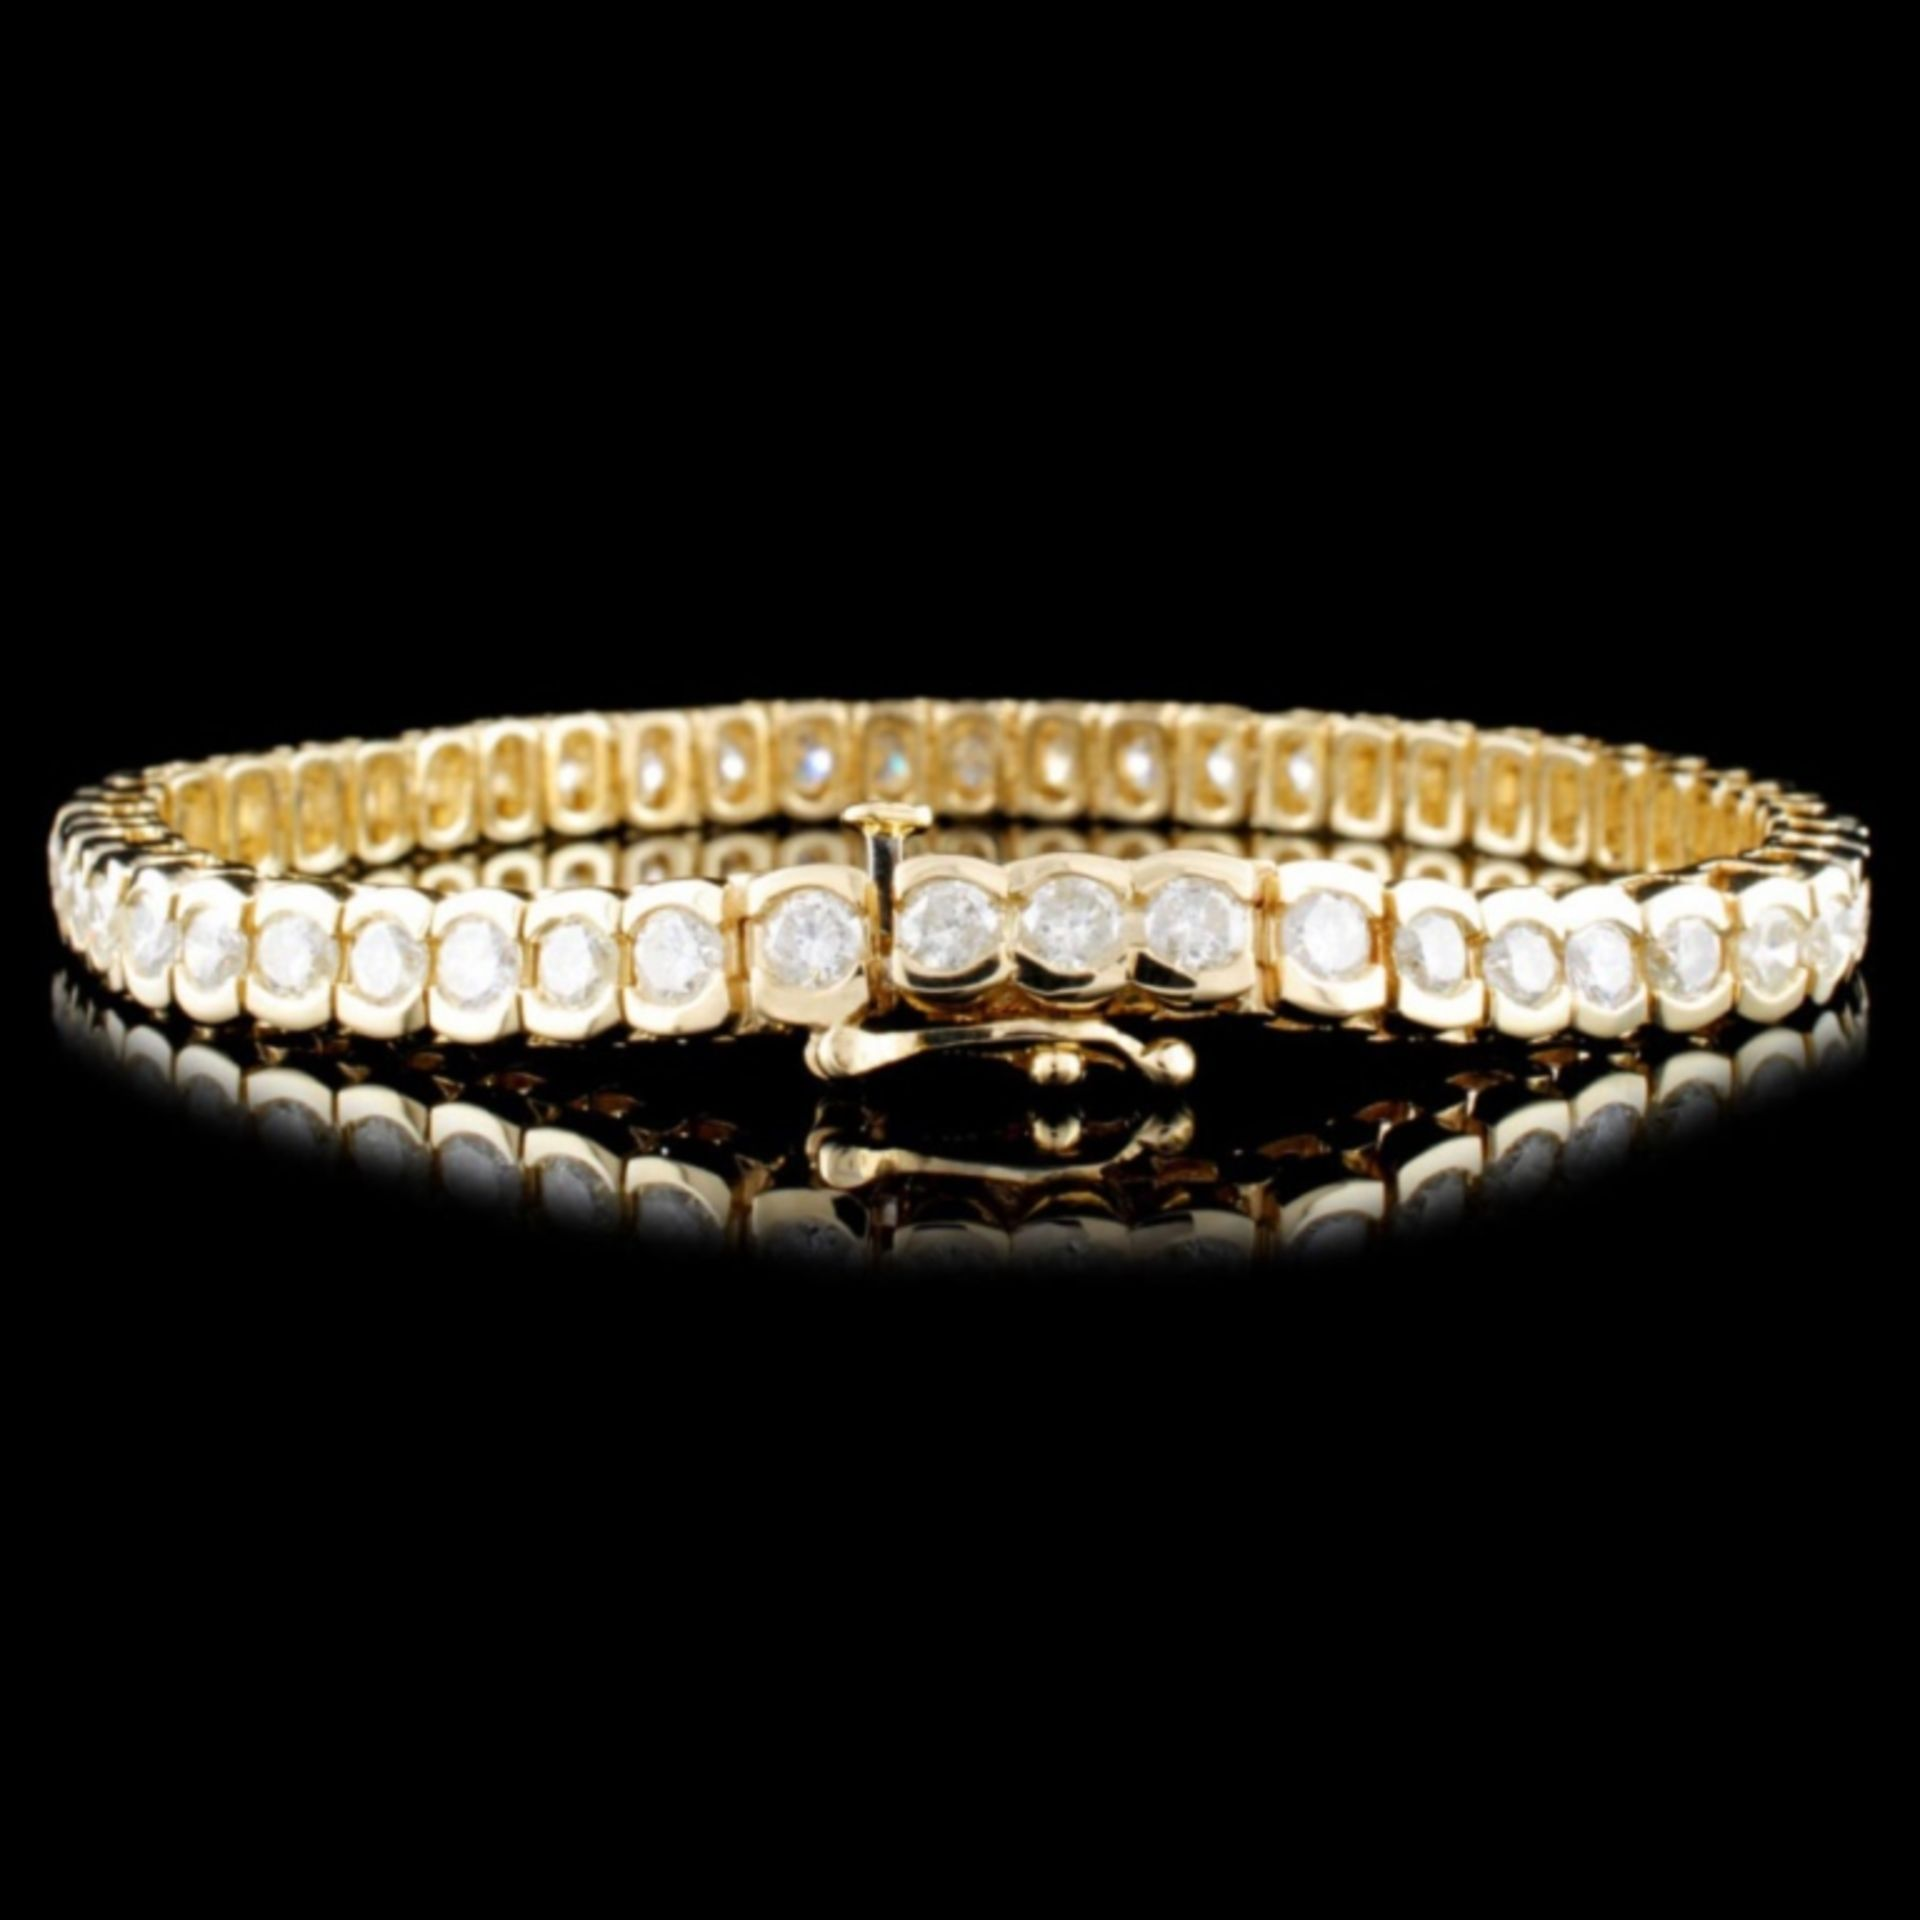 14K Gold 8.12ctw Diamond Tennis Bracelet - Image 2 of 3